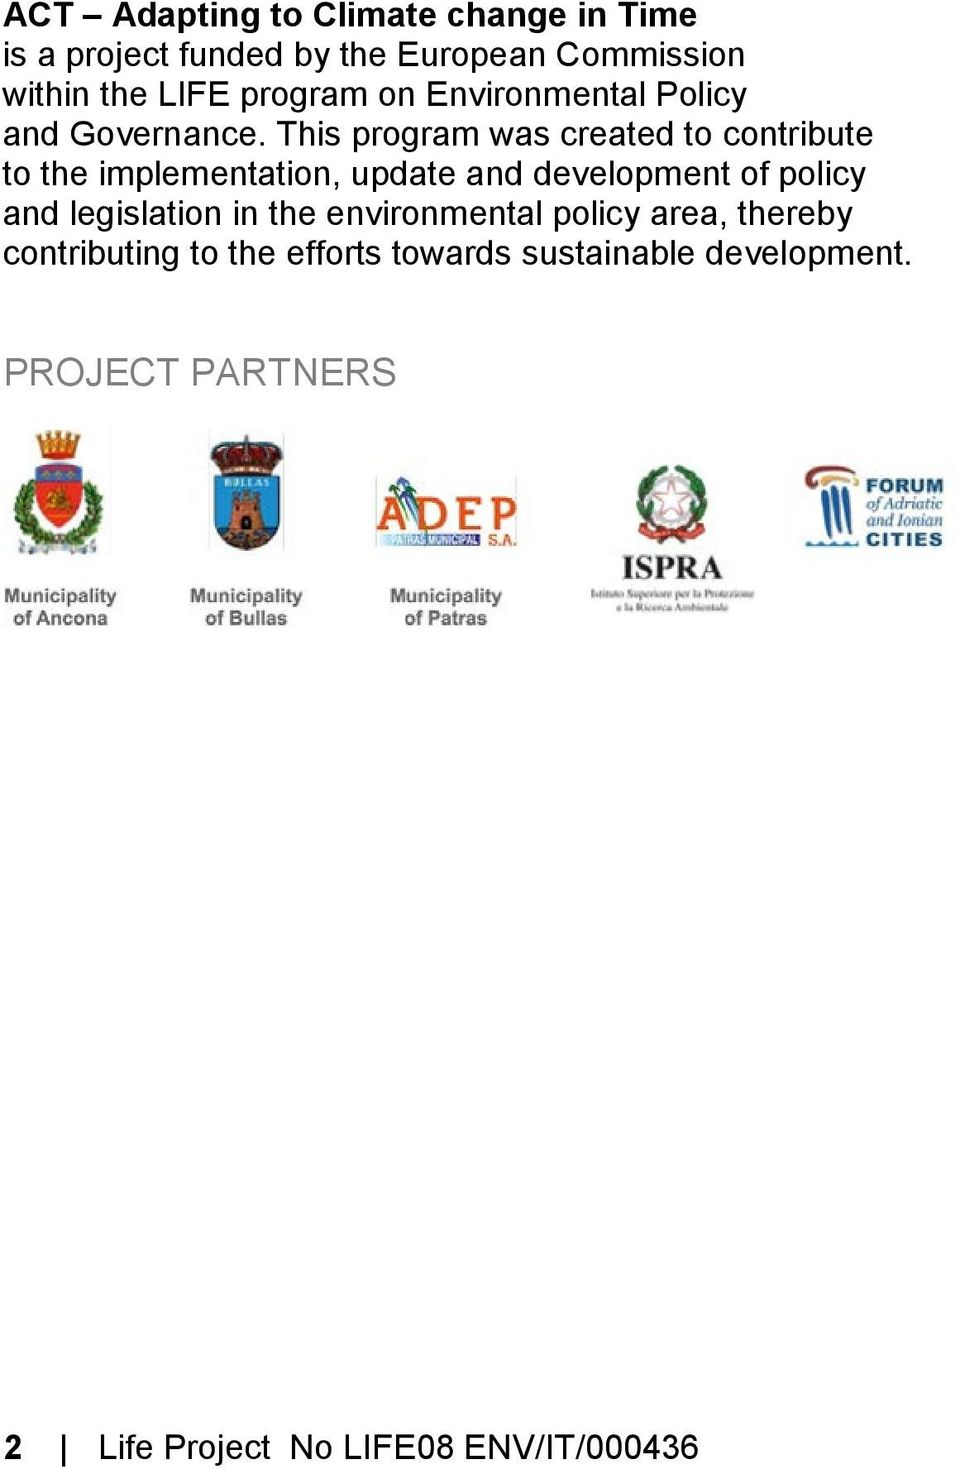 This program was created to contribute to the implementation, update and development of policy and